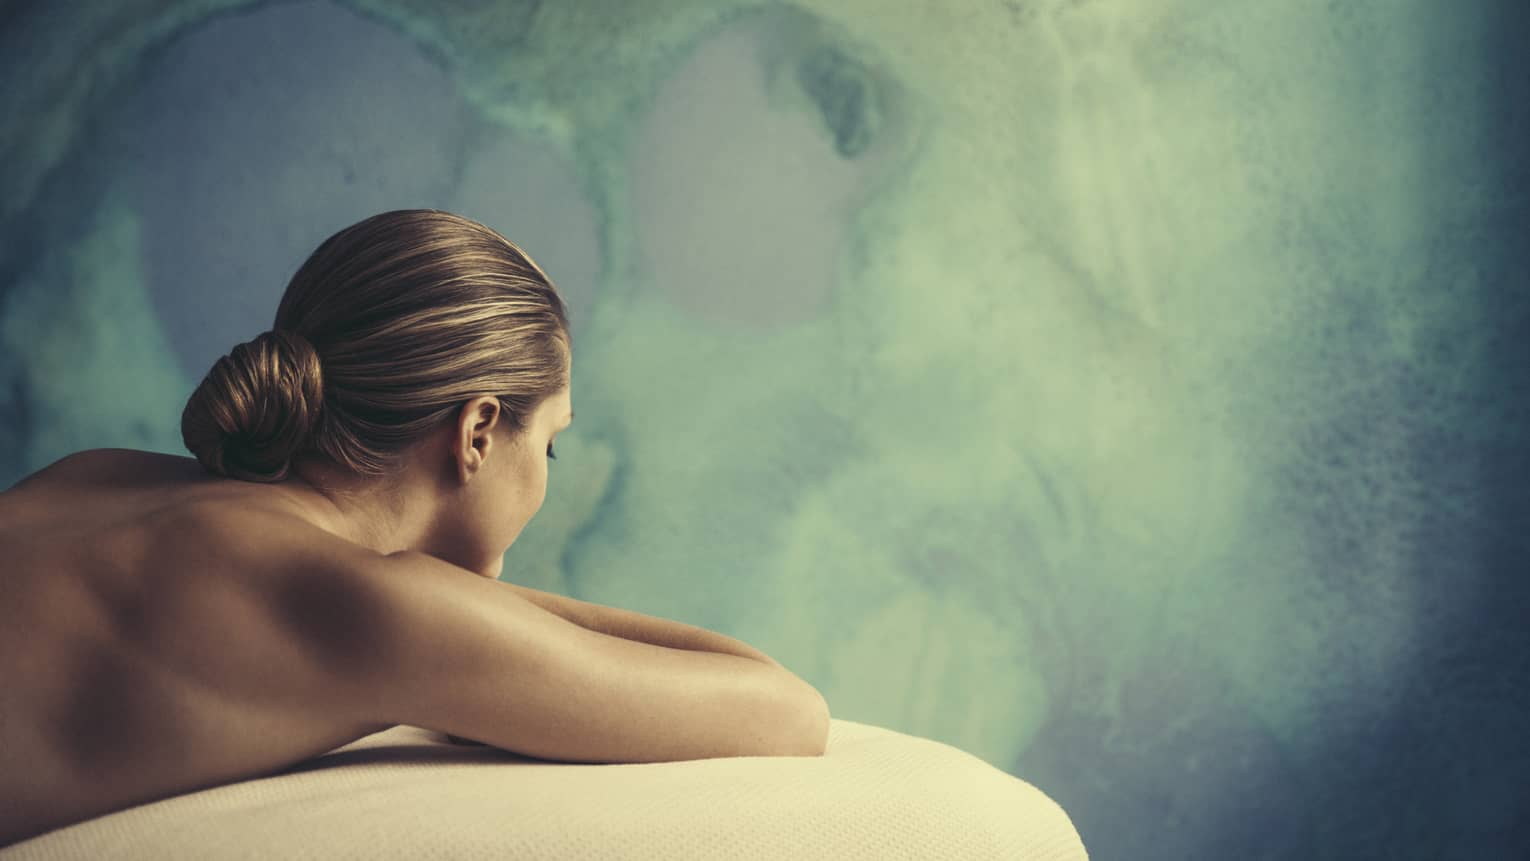 Woman with bare shoulders, hair tied back lies on massage table in front of blue-and-green wall